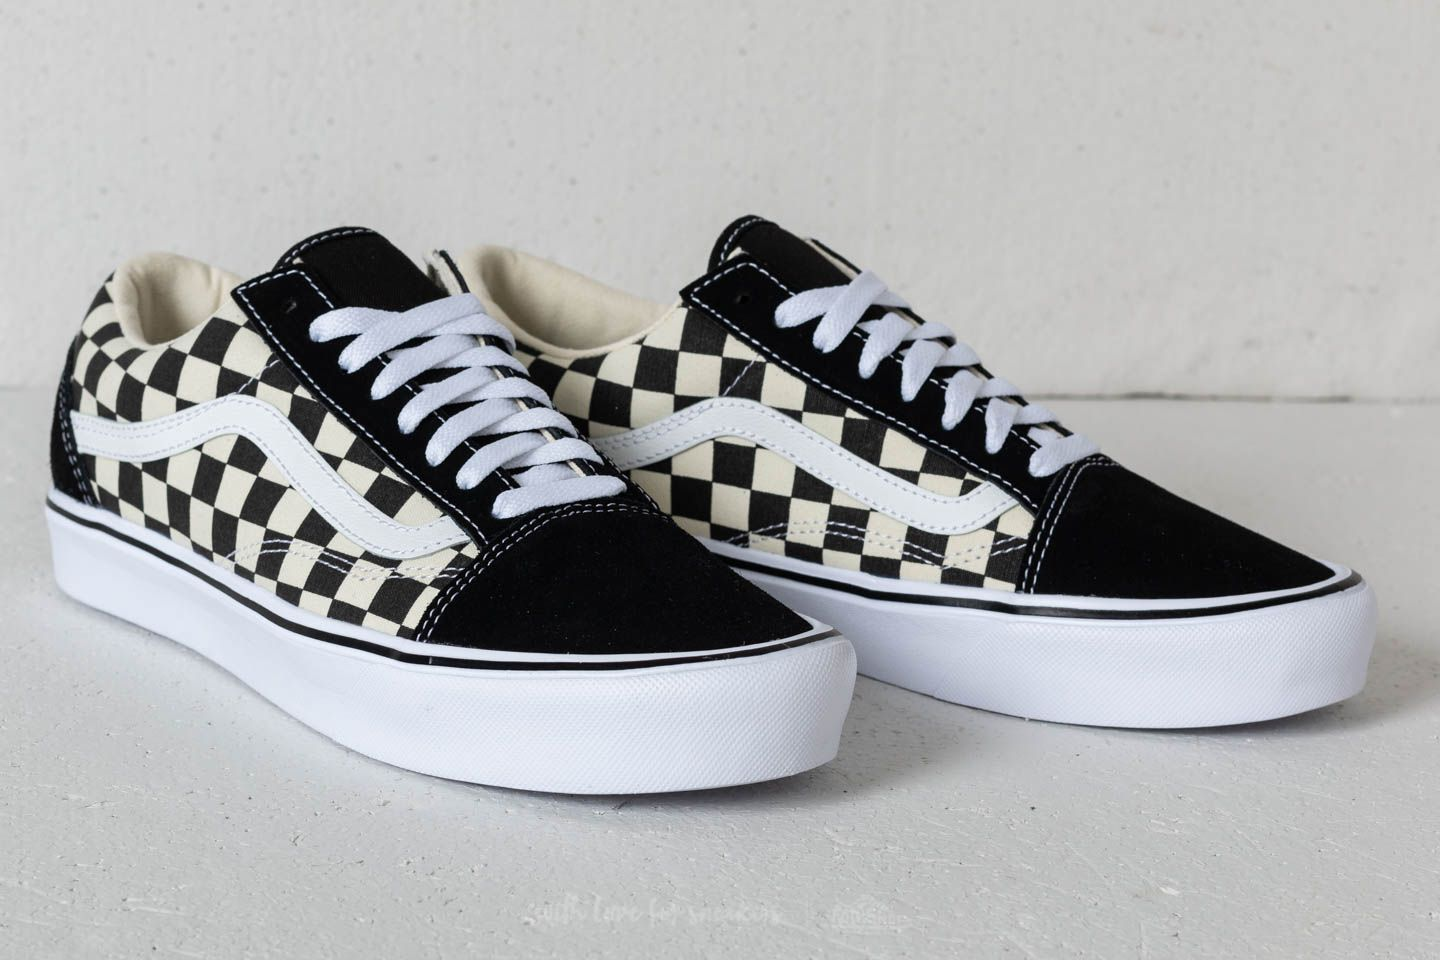 Vans Old Skool Lite (Checkerboard) Black White | Footshop